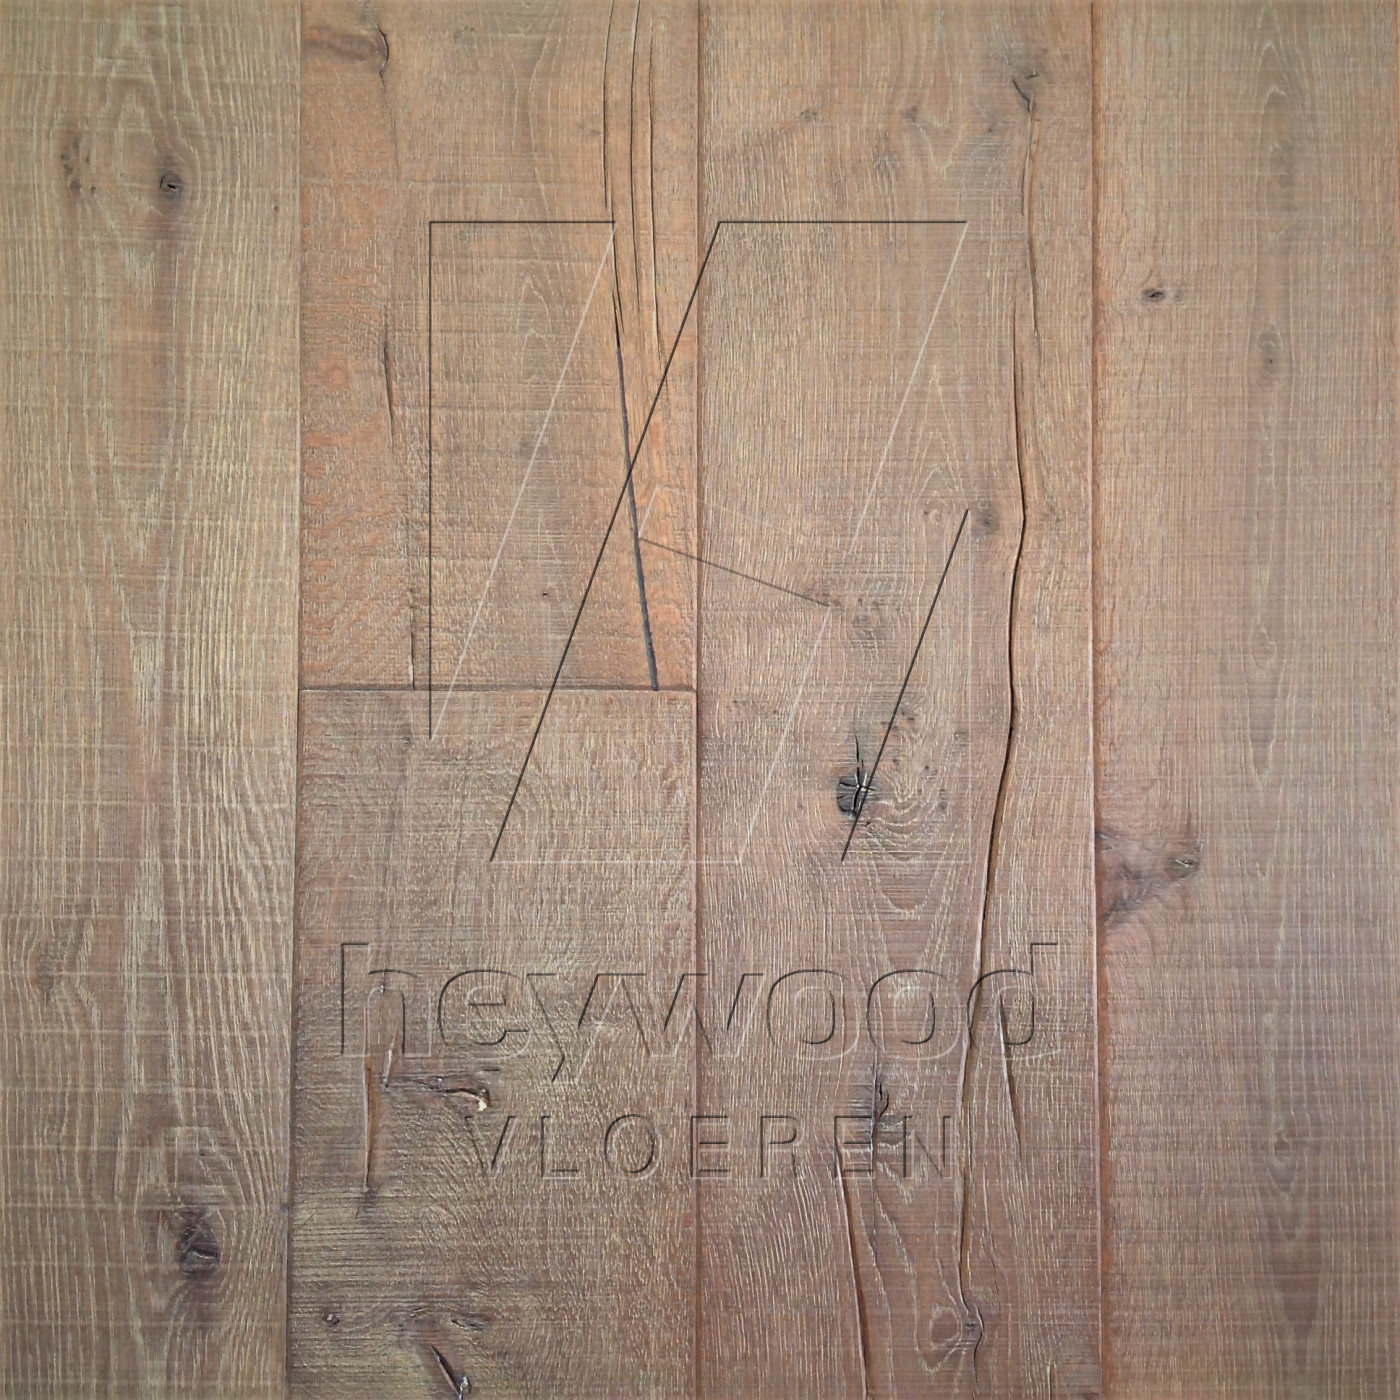 Knotting Hill Plank 'Patagonia' in Aged Knotting Hill Surface of Aged Hardwood Floors